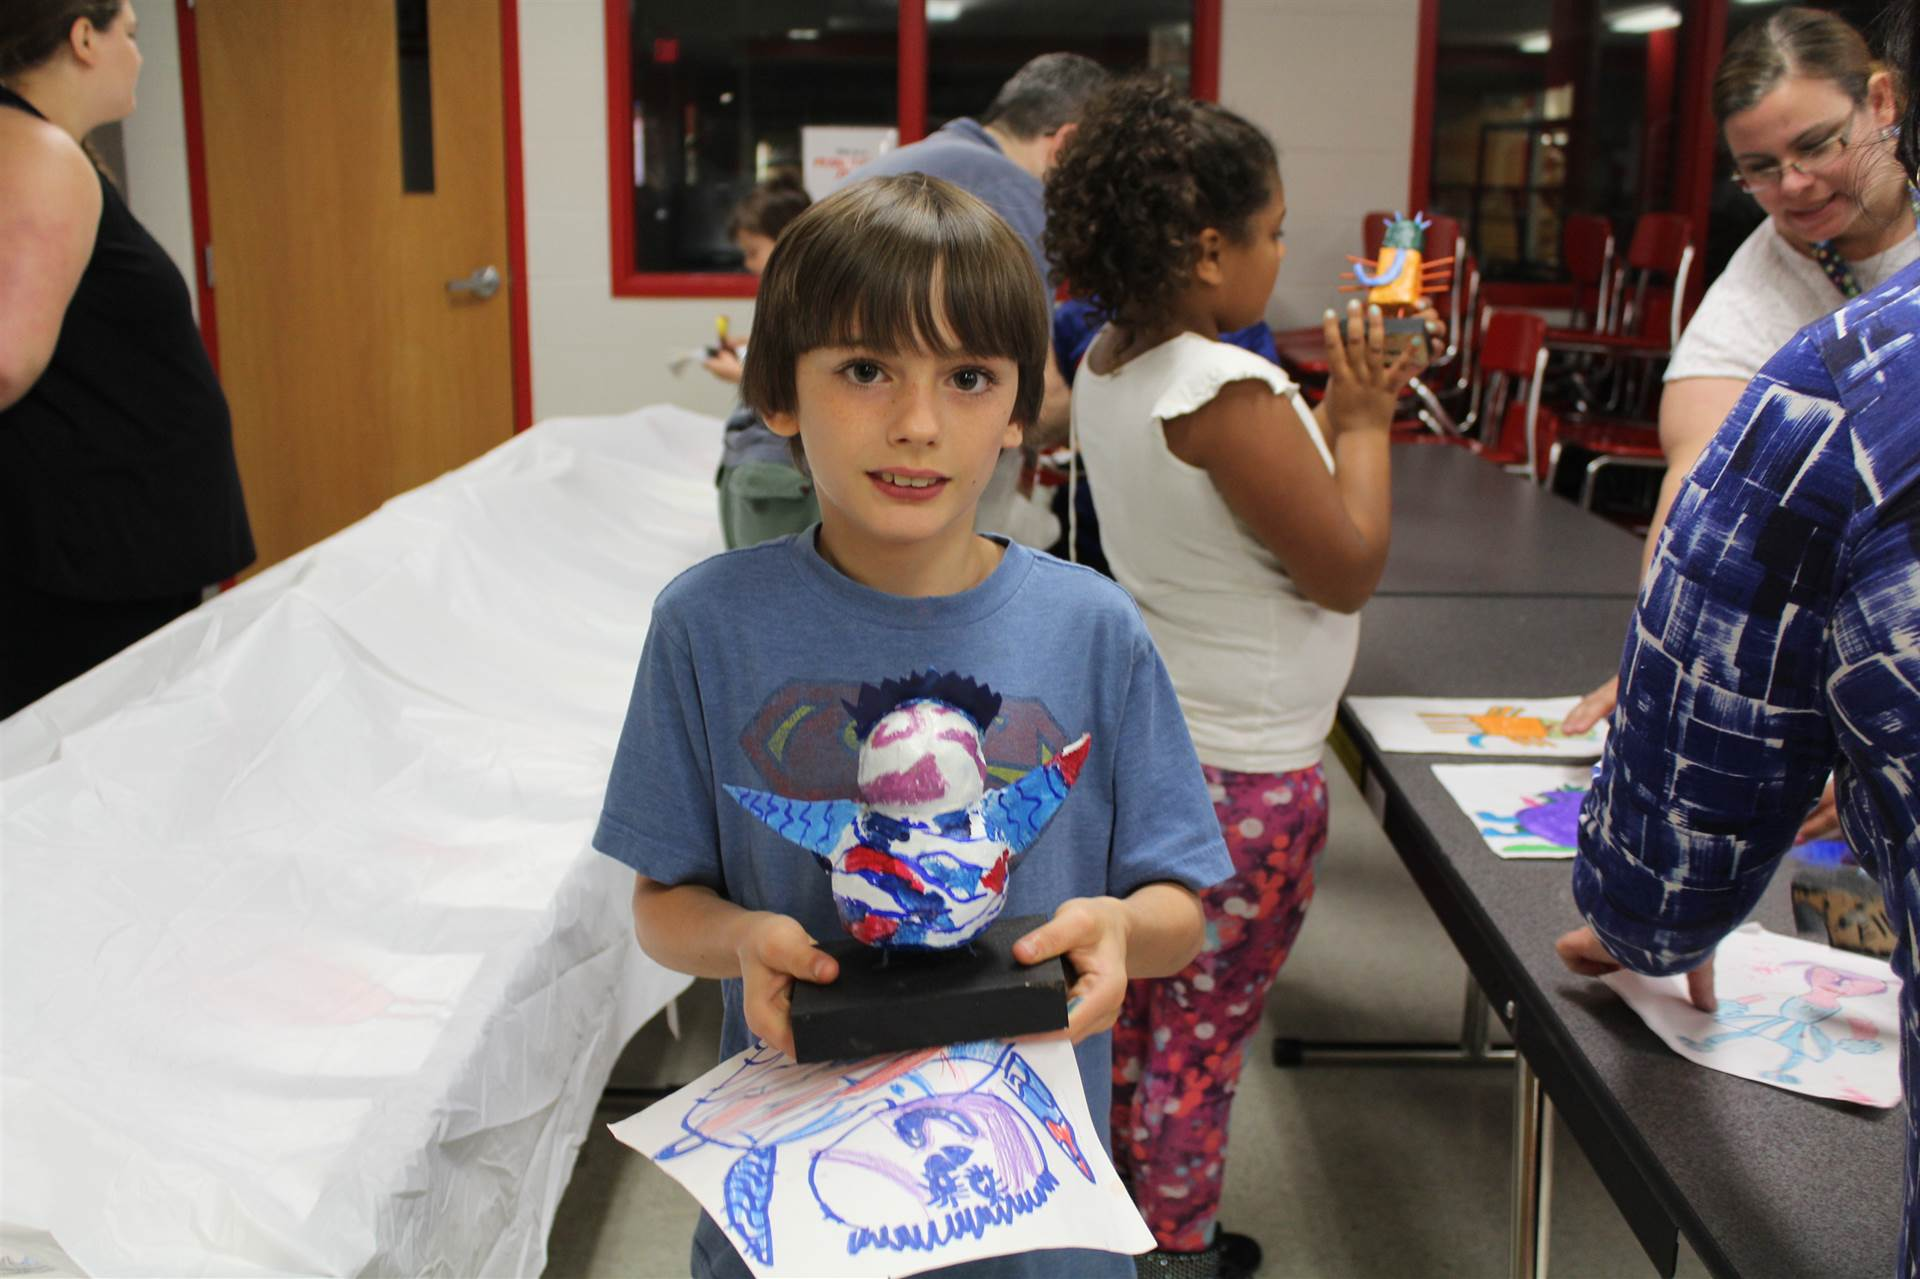 boy in blue shirt smiles holding drawing and 3 d sculpture